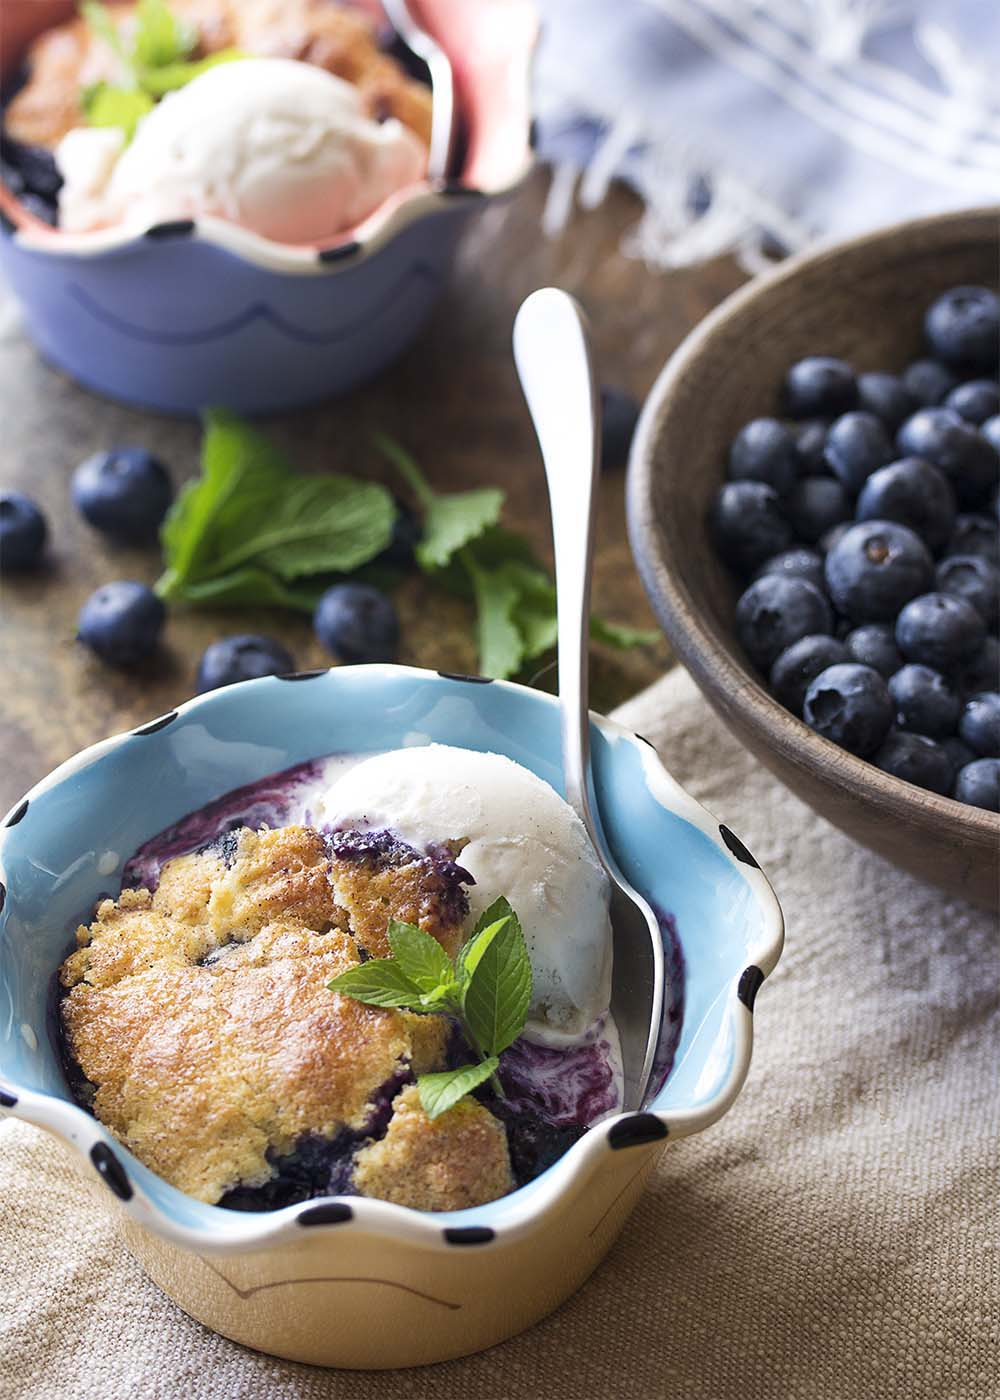 Dessert bowls filled with servings of blueberry skillet cobbler and scoops of vanilla ice cream showing the golden brown biscuit crust and juicy blueberry filling.